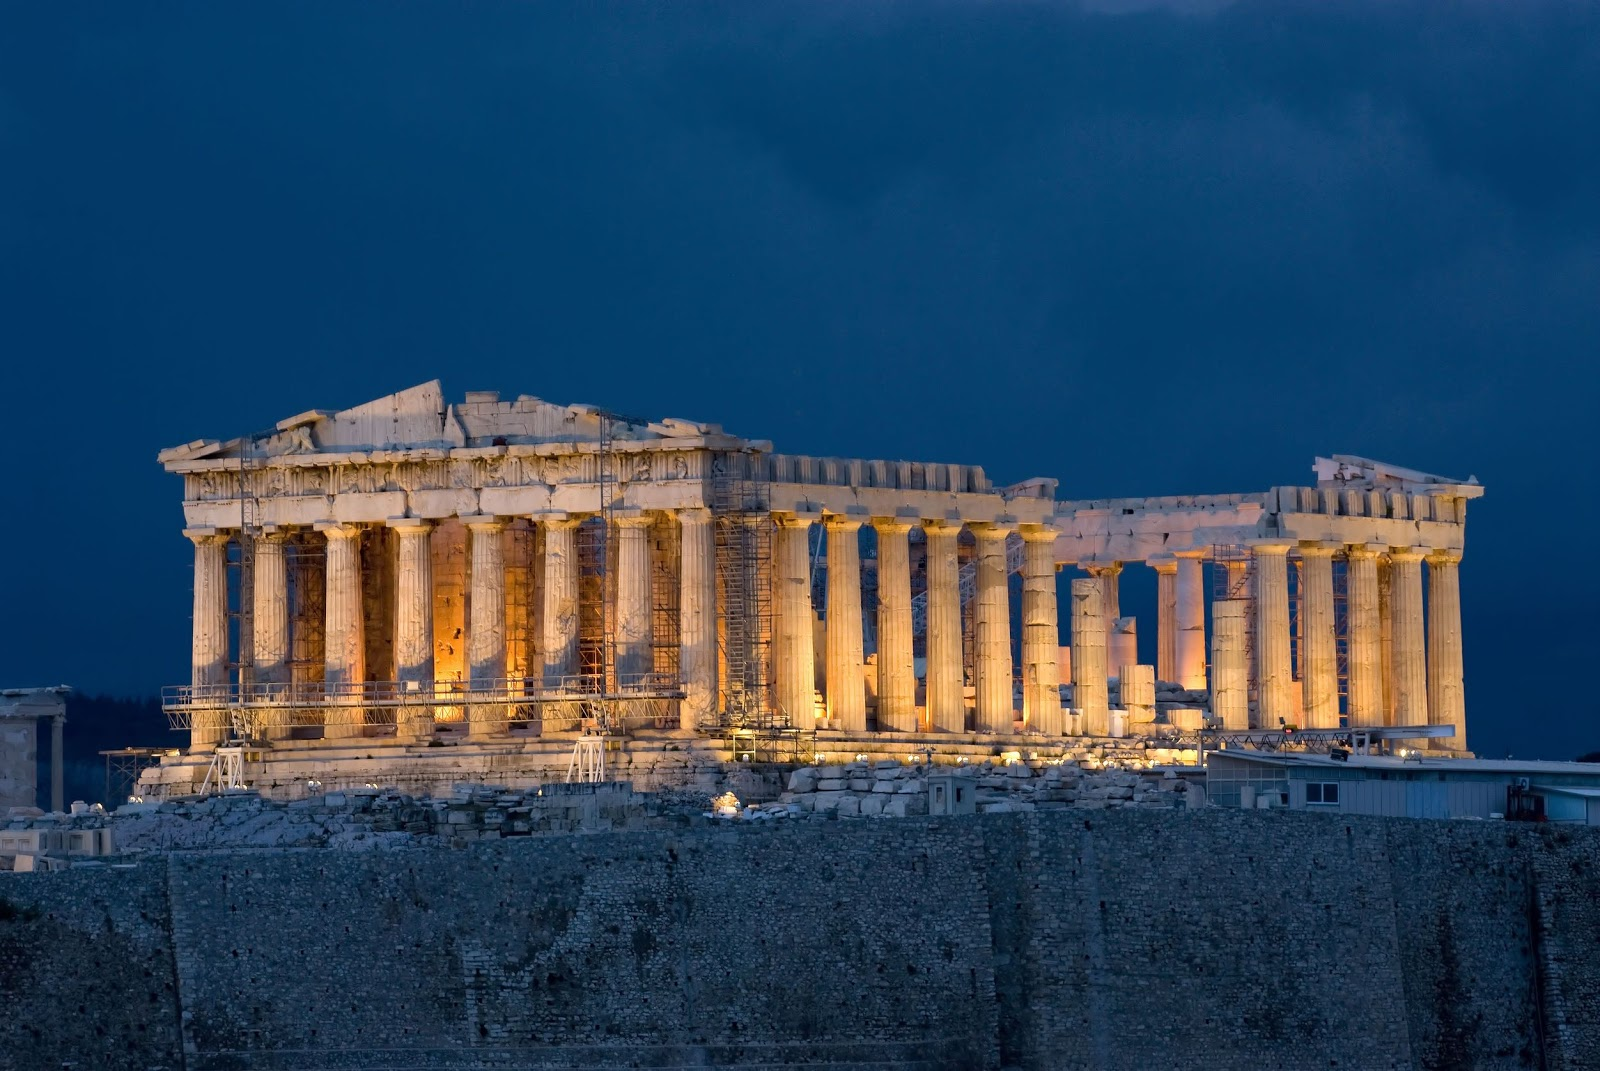 importance and influence of the parthenon in ancient greece The parthenon is one of the best known architectural symbols of any civilization built in the 15 year period between 447-432 bc this ancient greek temple was designed as a replacement for a temple destroyed by the persians in 480 bc.